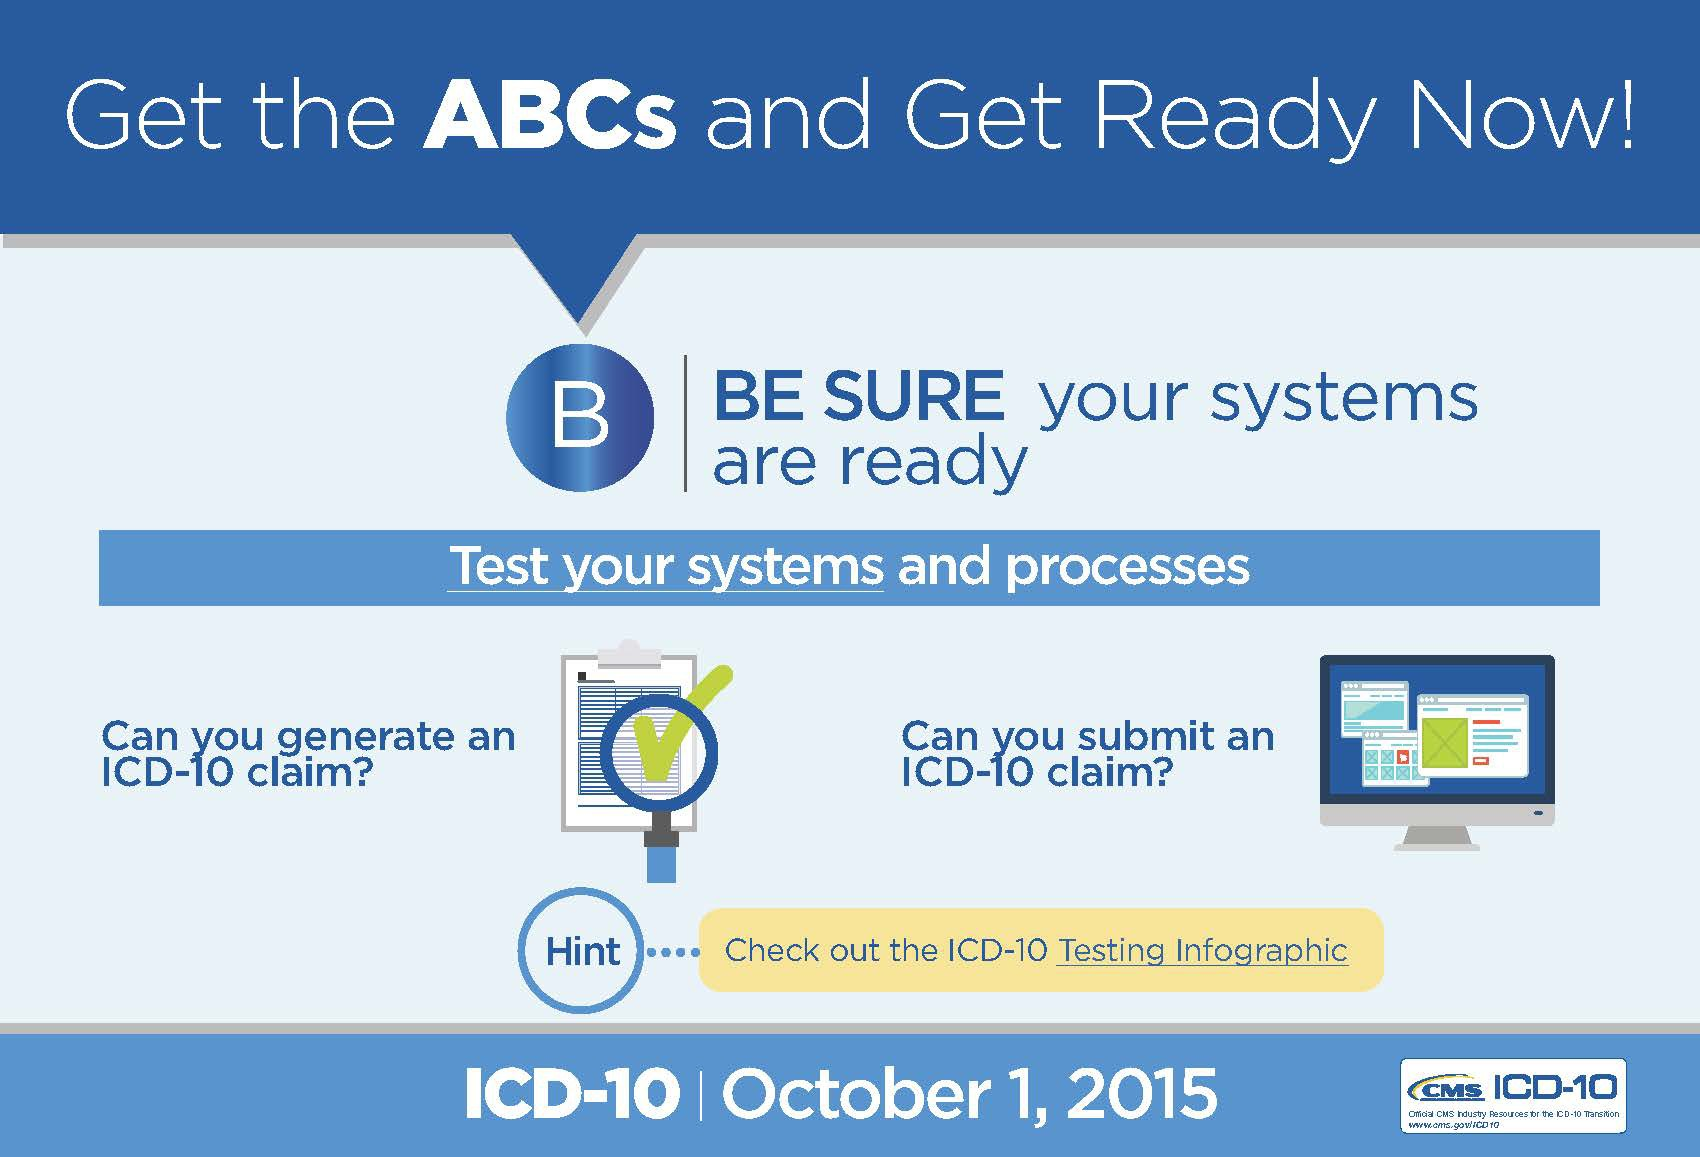 CMS_ICD-10 Infographic